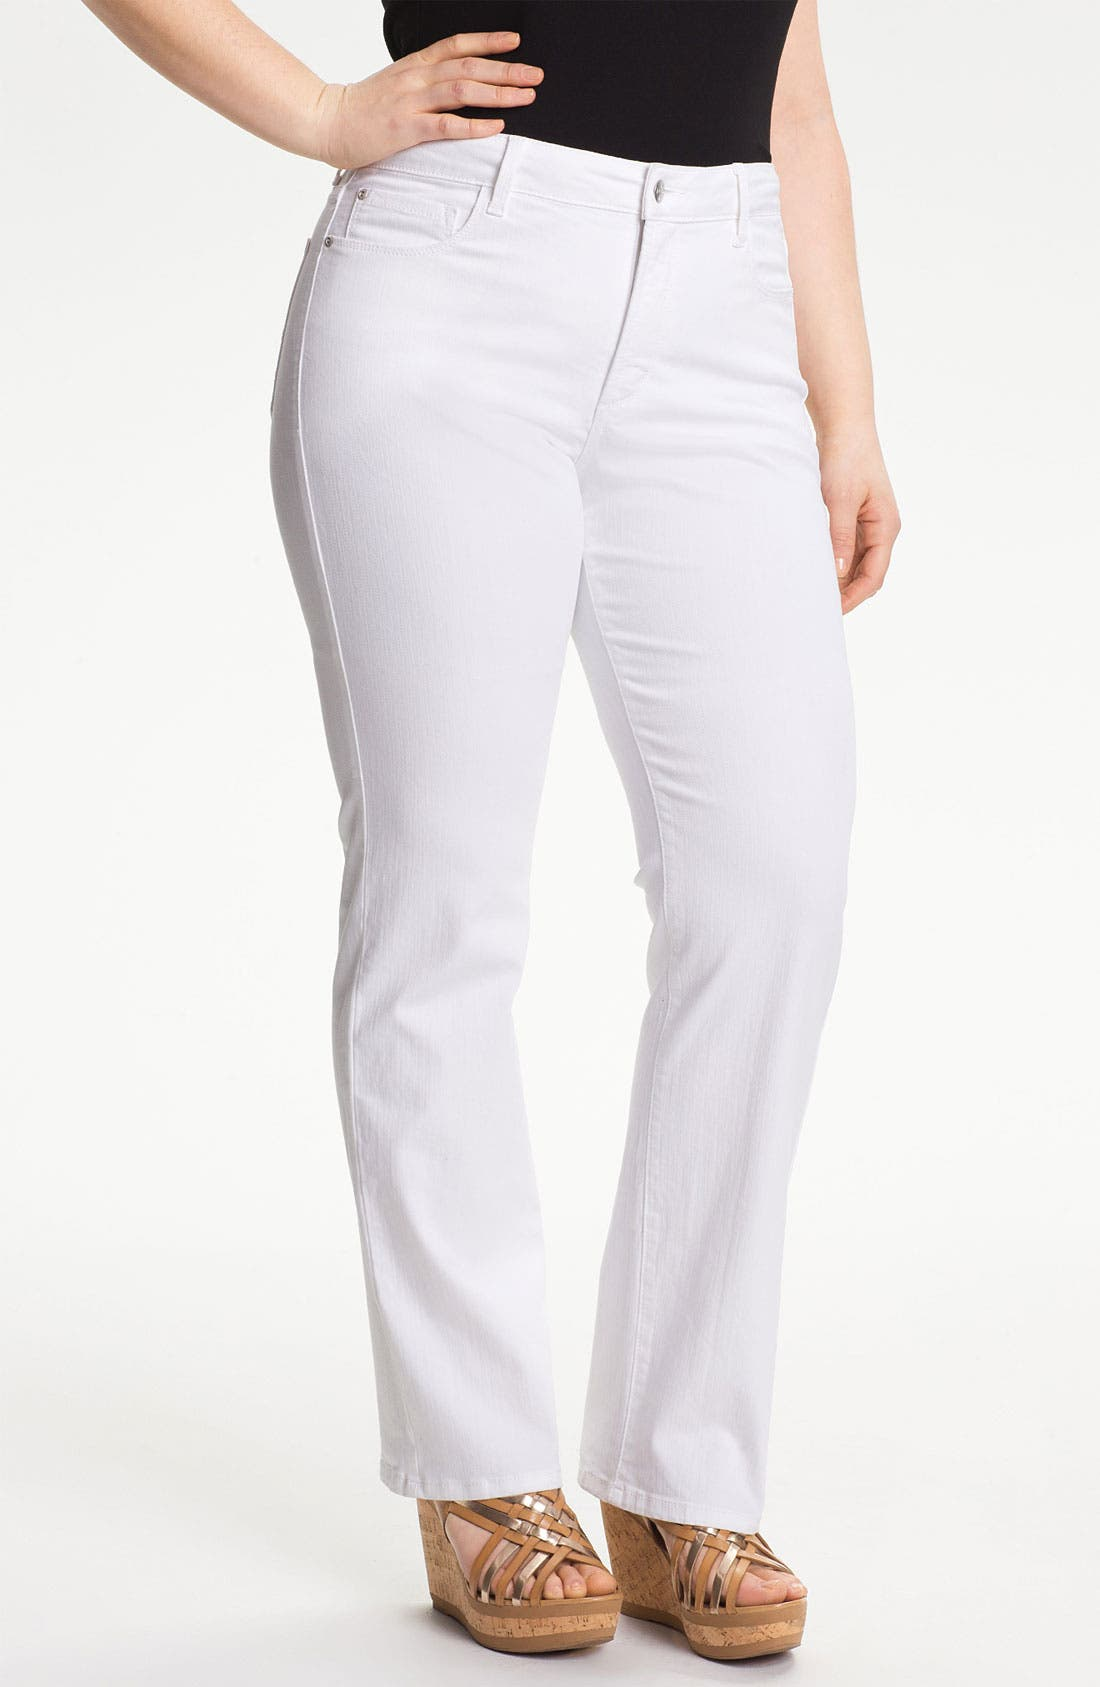 Alternate Image 1 Selected - NYDJ Embellished Straight Jeans (Plus Size)